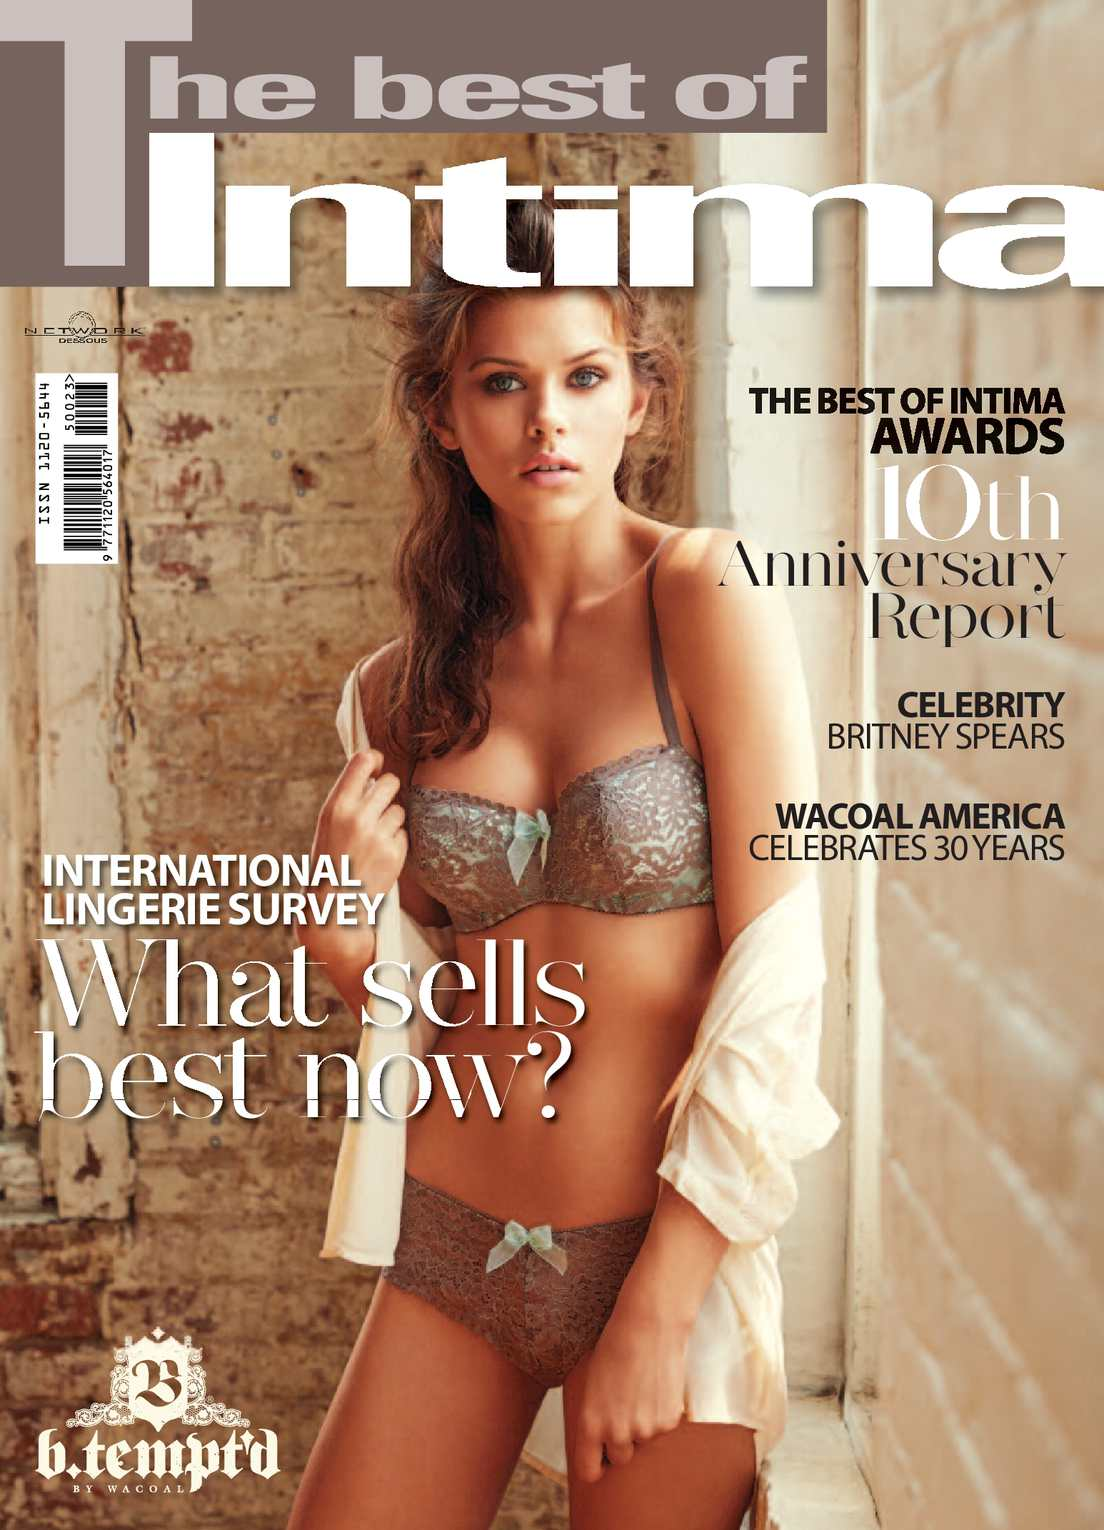 THE BEST OF INTIMA February 2015